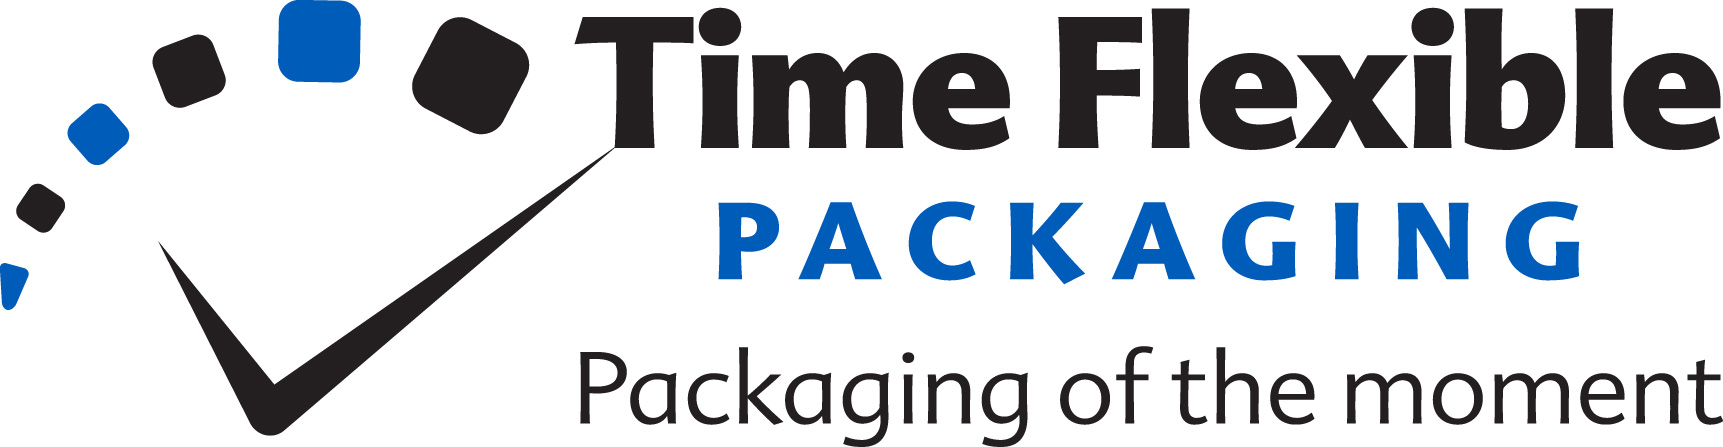 Time Flexible Packaging